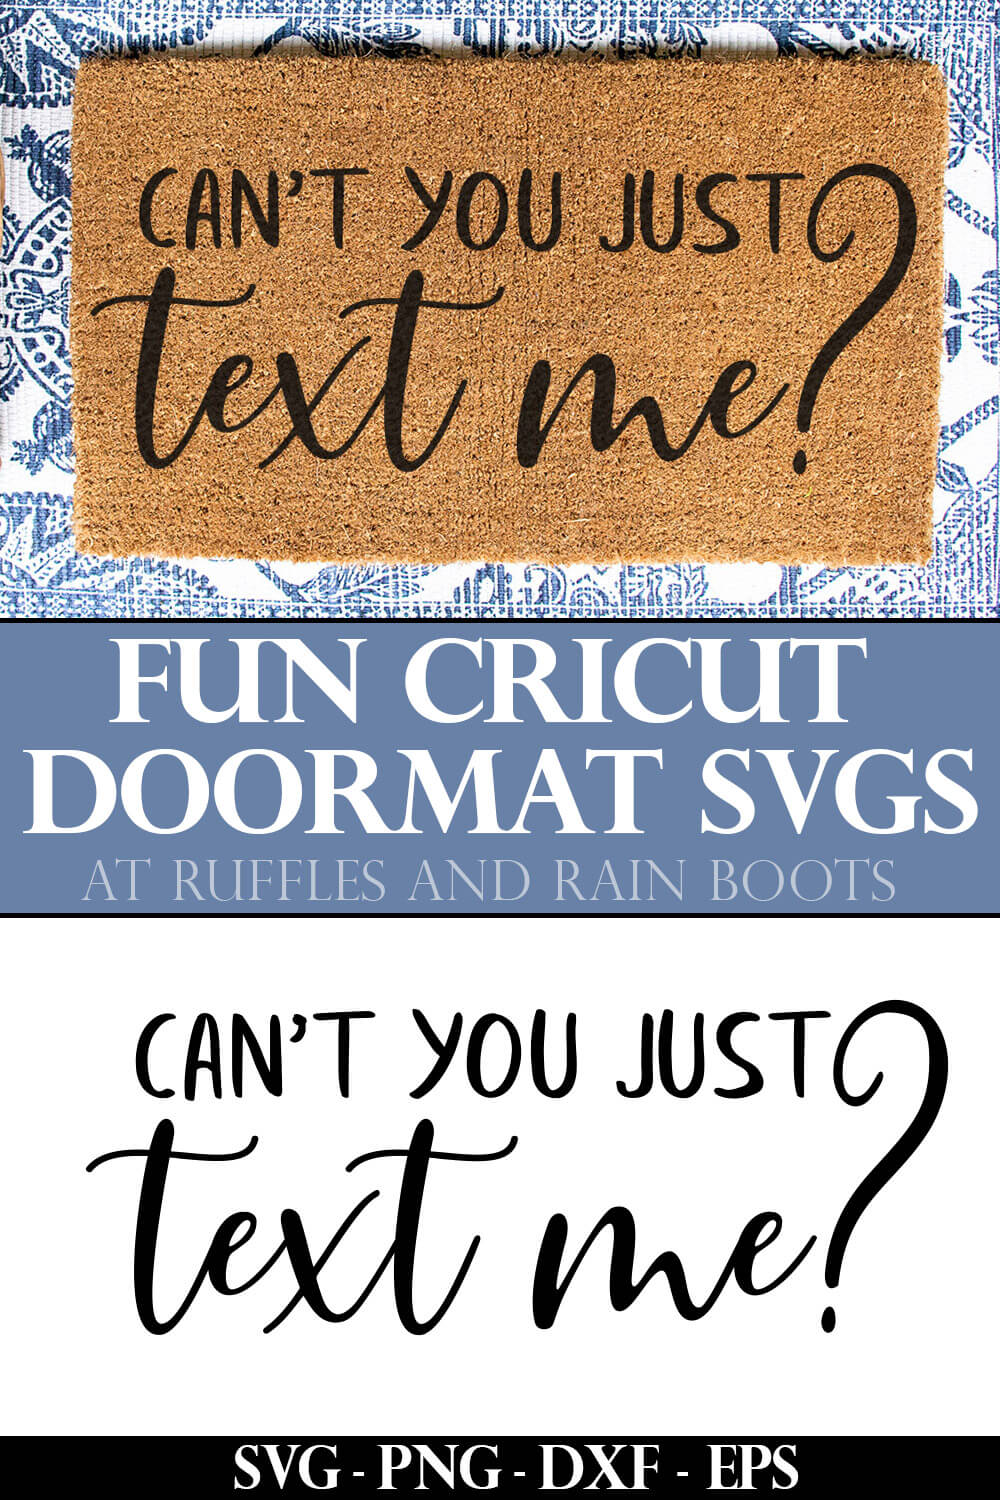 I Love These Funny Free Texting Doormat Svgs I Can T